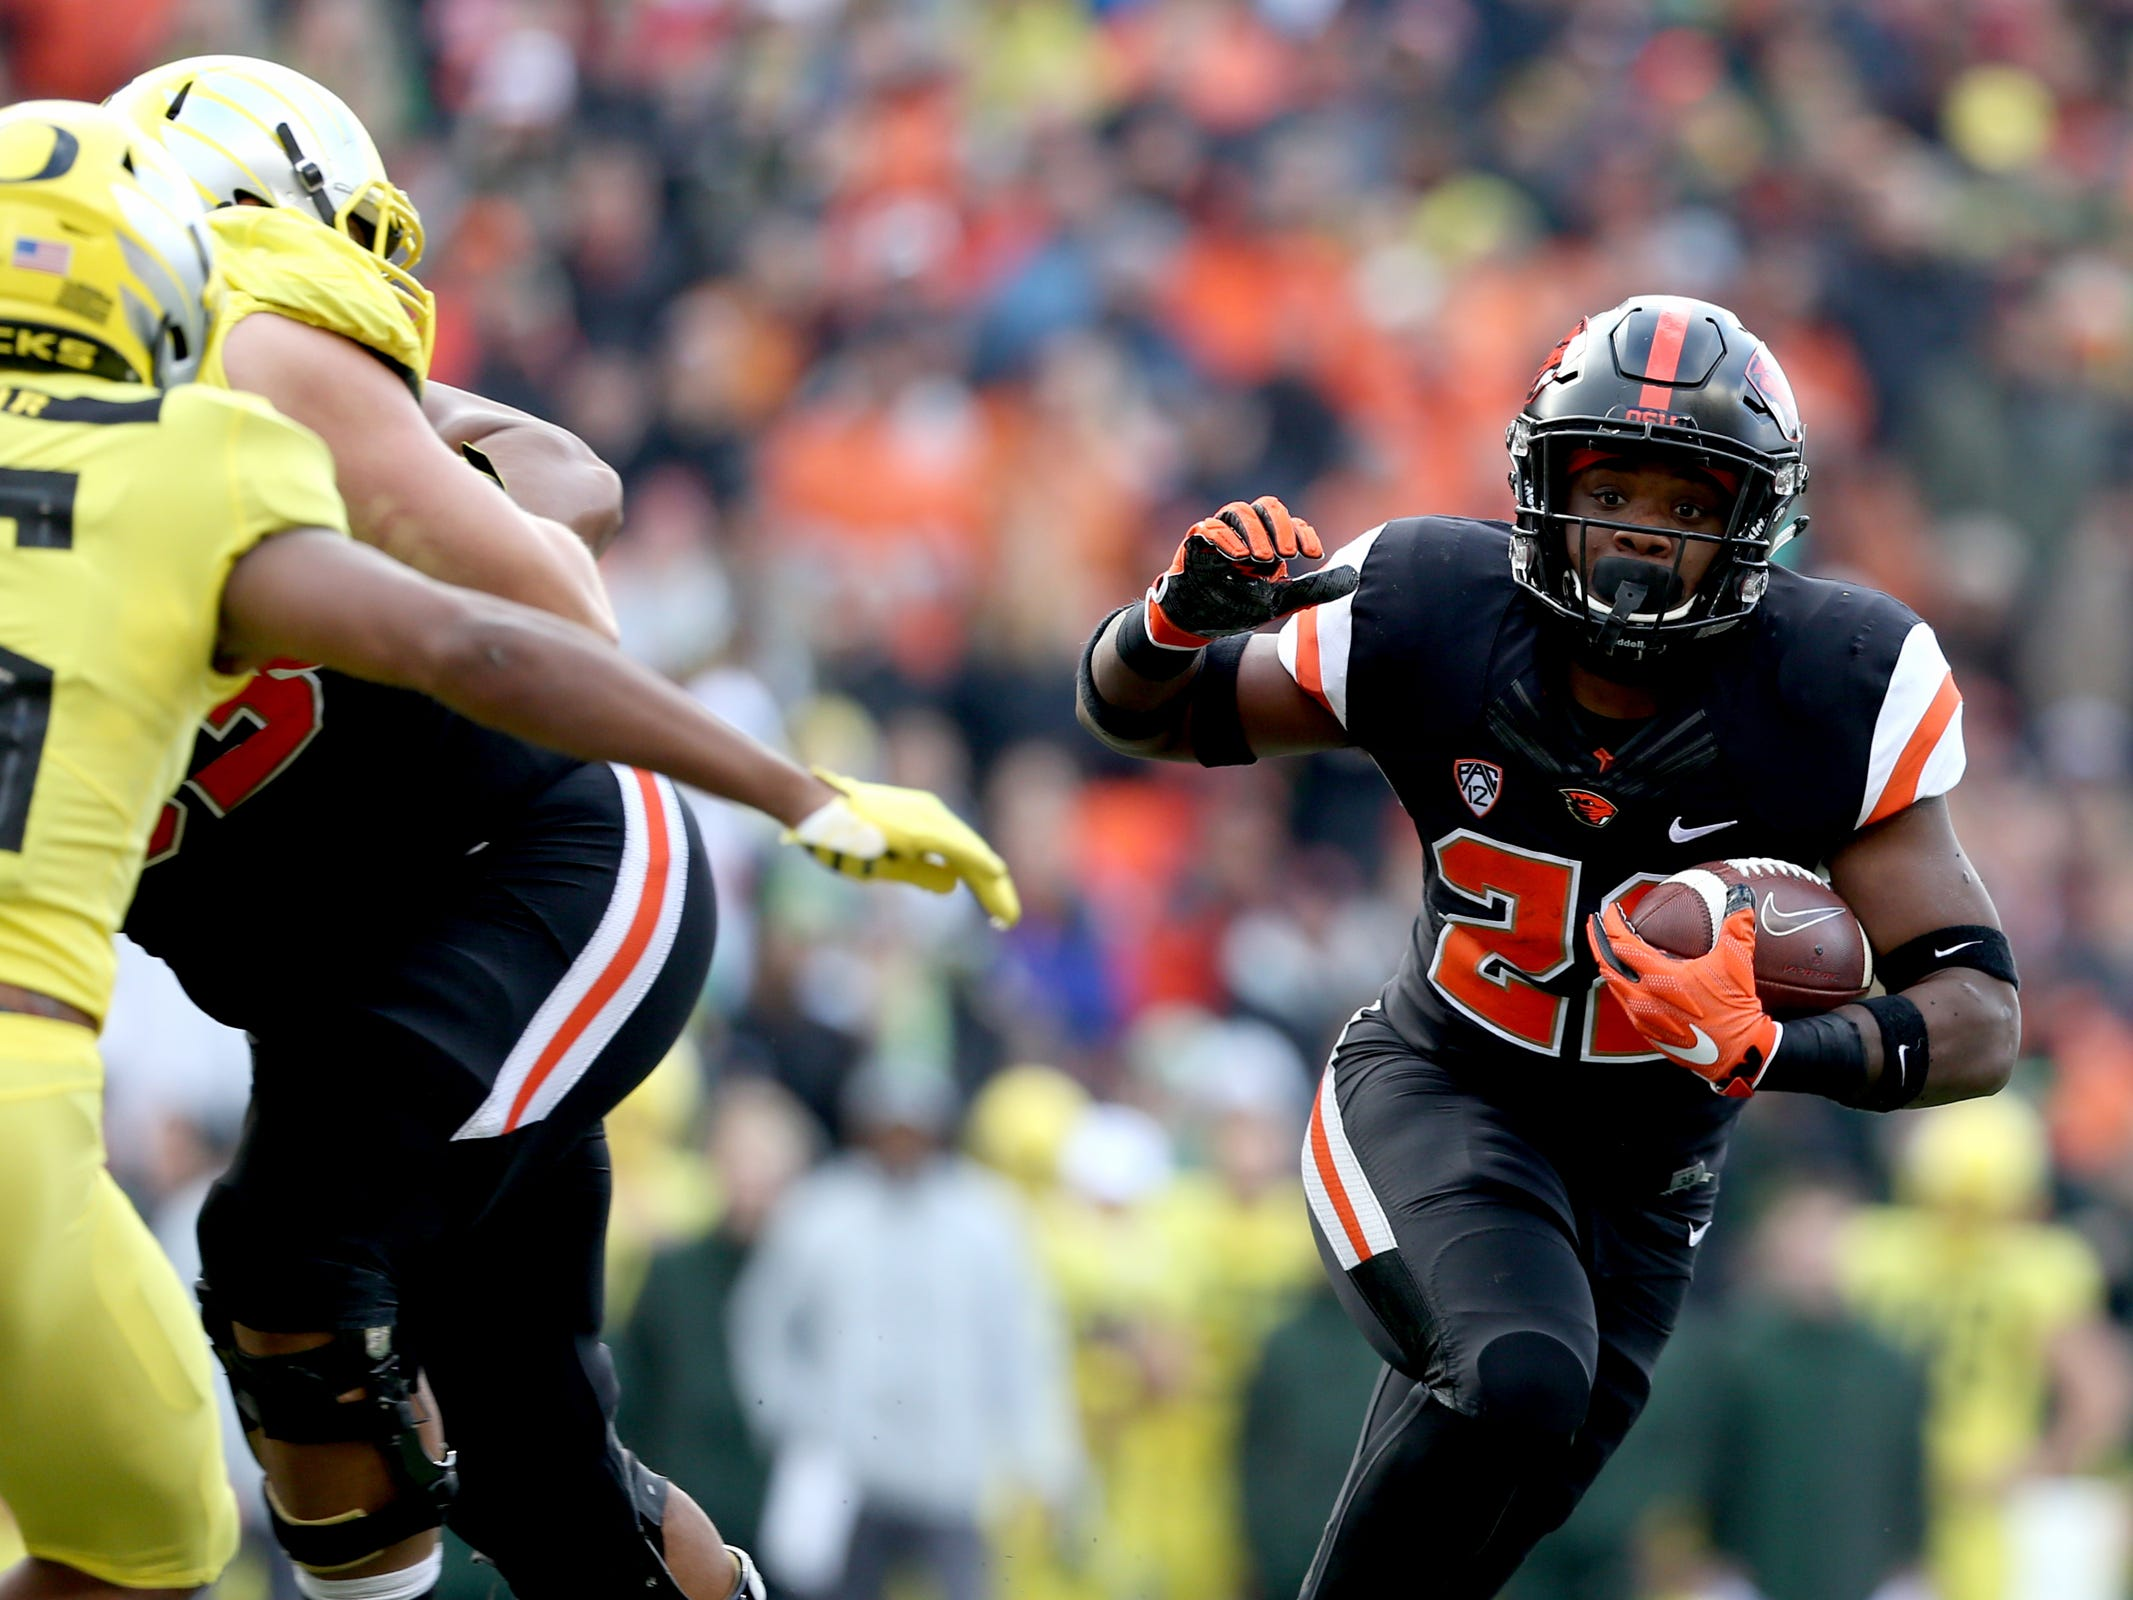 Oregon State's Jermar Jefferson (22) rushes in the Oregon vs. Oregon State Civil war football game at Oregon State University in Corvallis on Friday, Nov. 23, 2018.